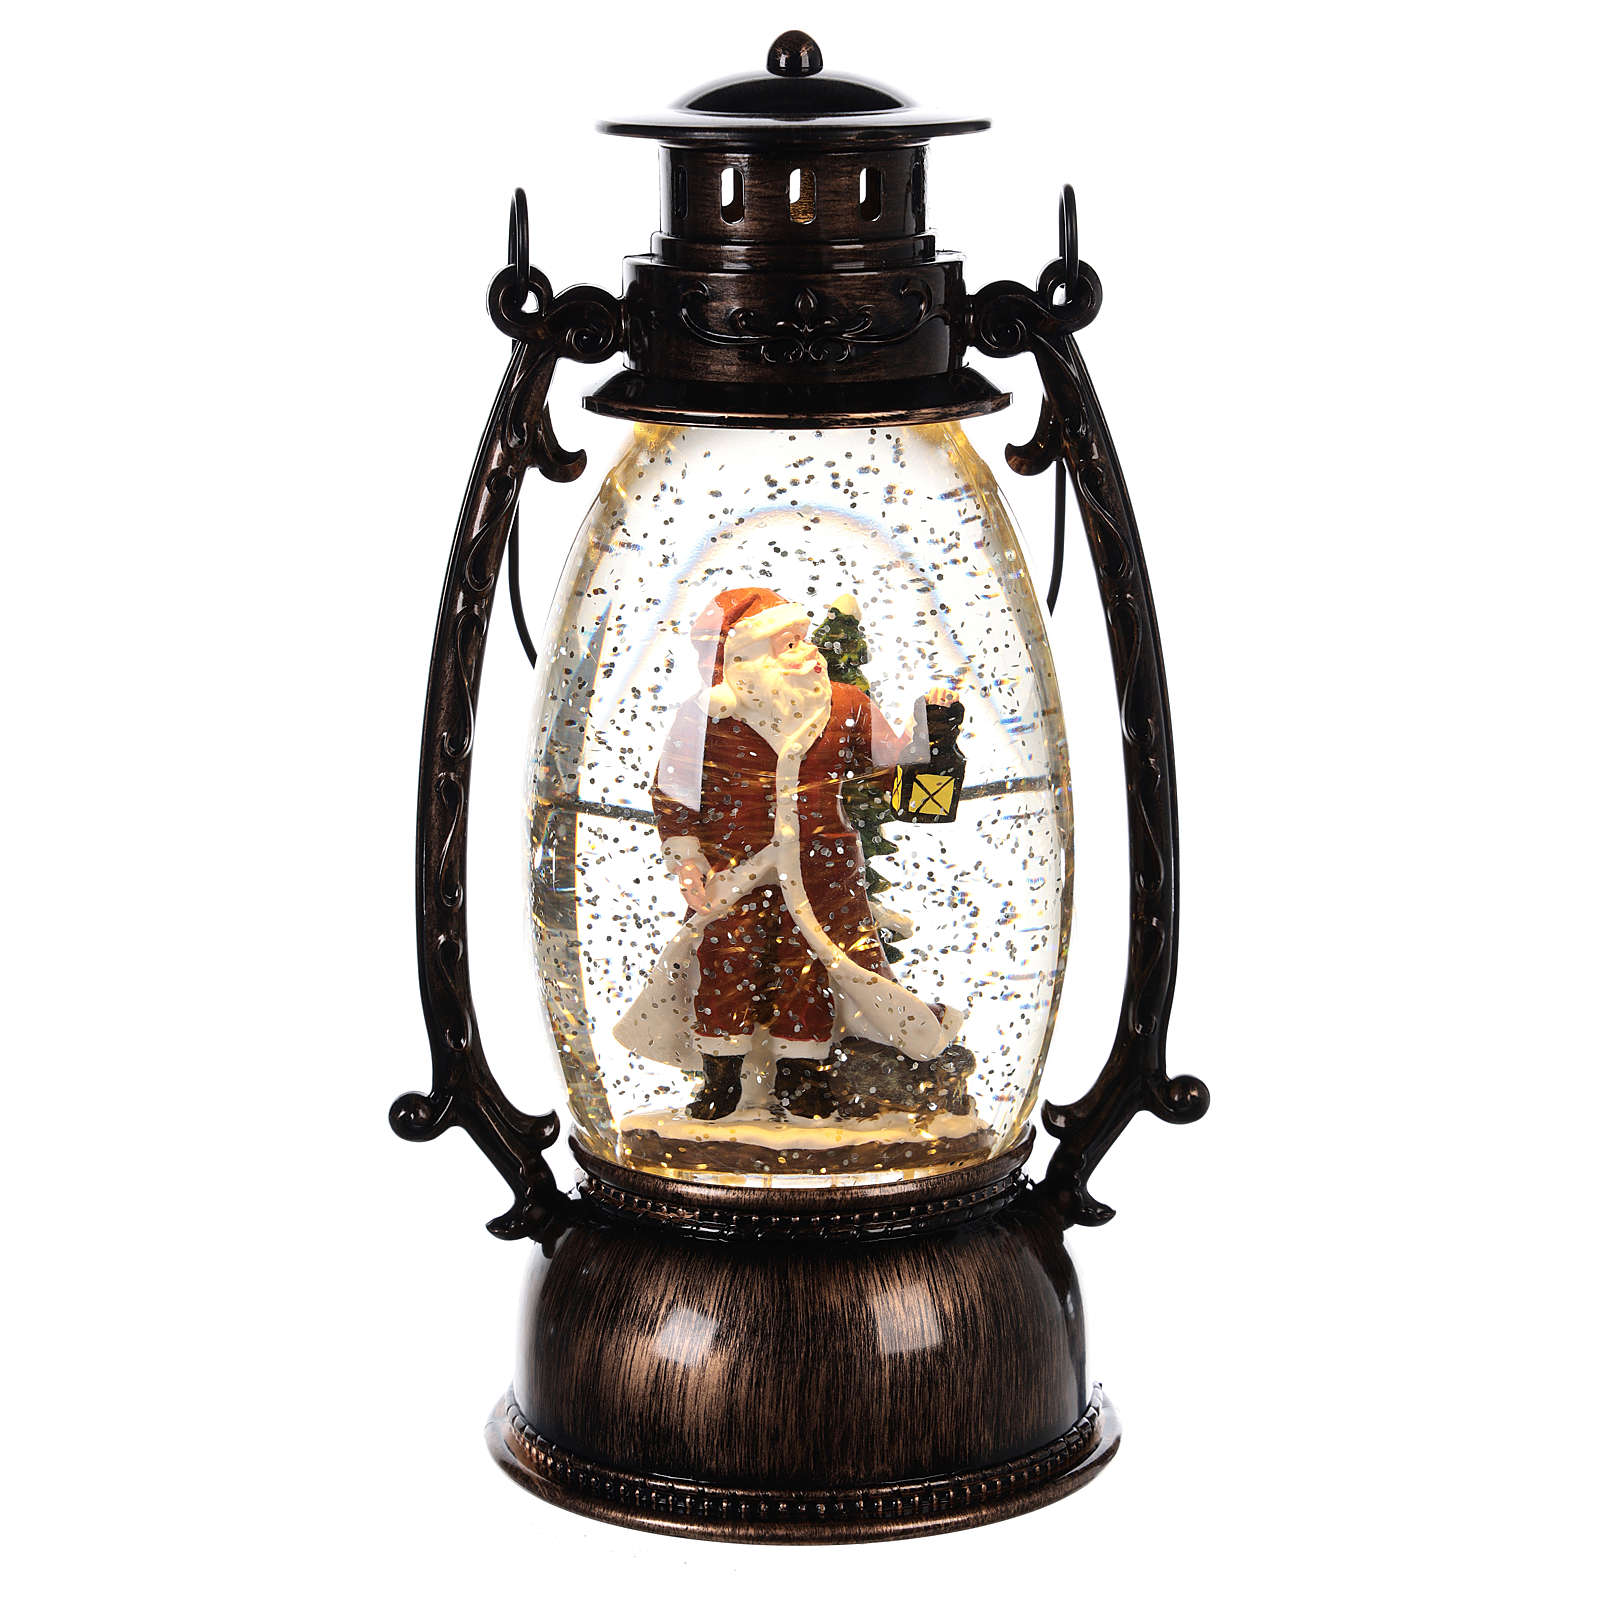 Glass ball with snow and Santa Claus in 25x10 lantern 3